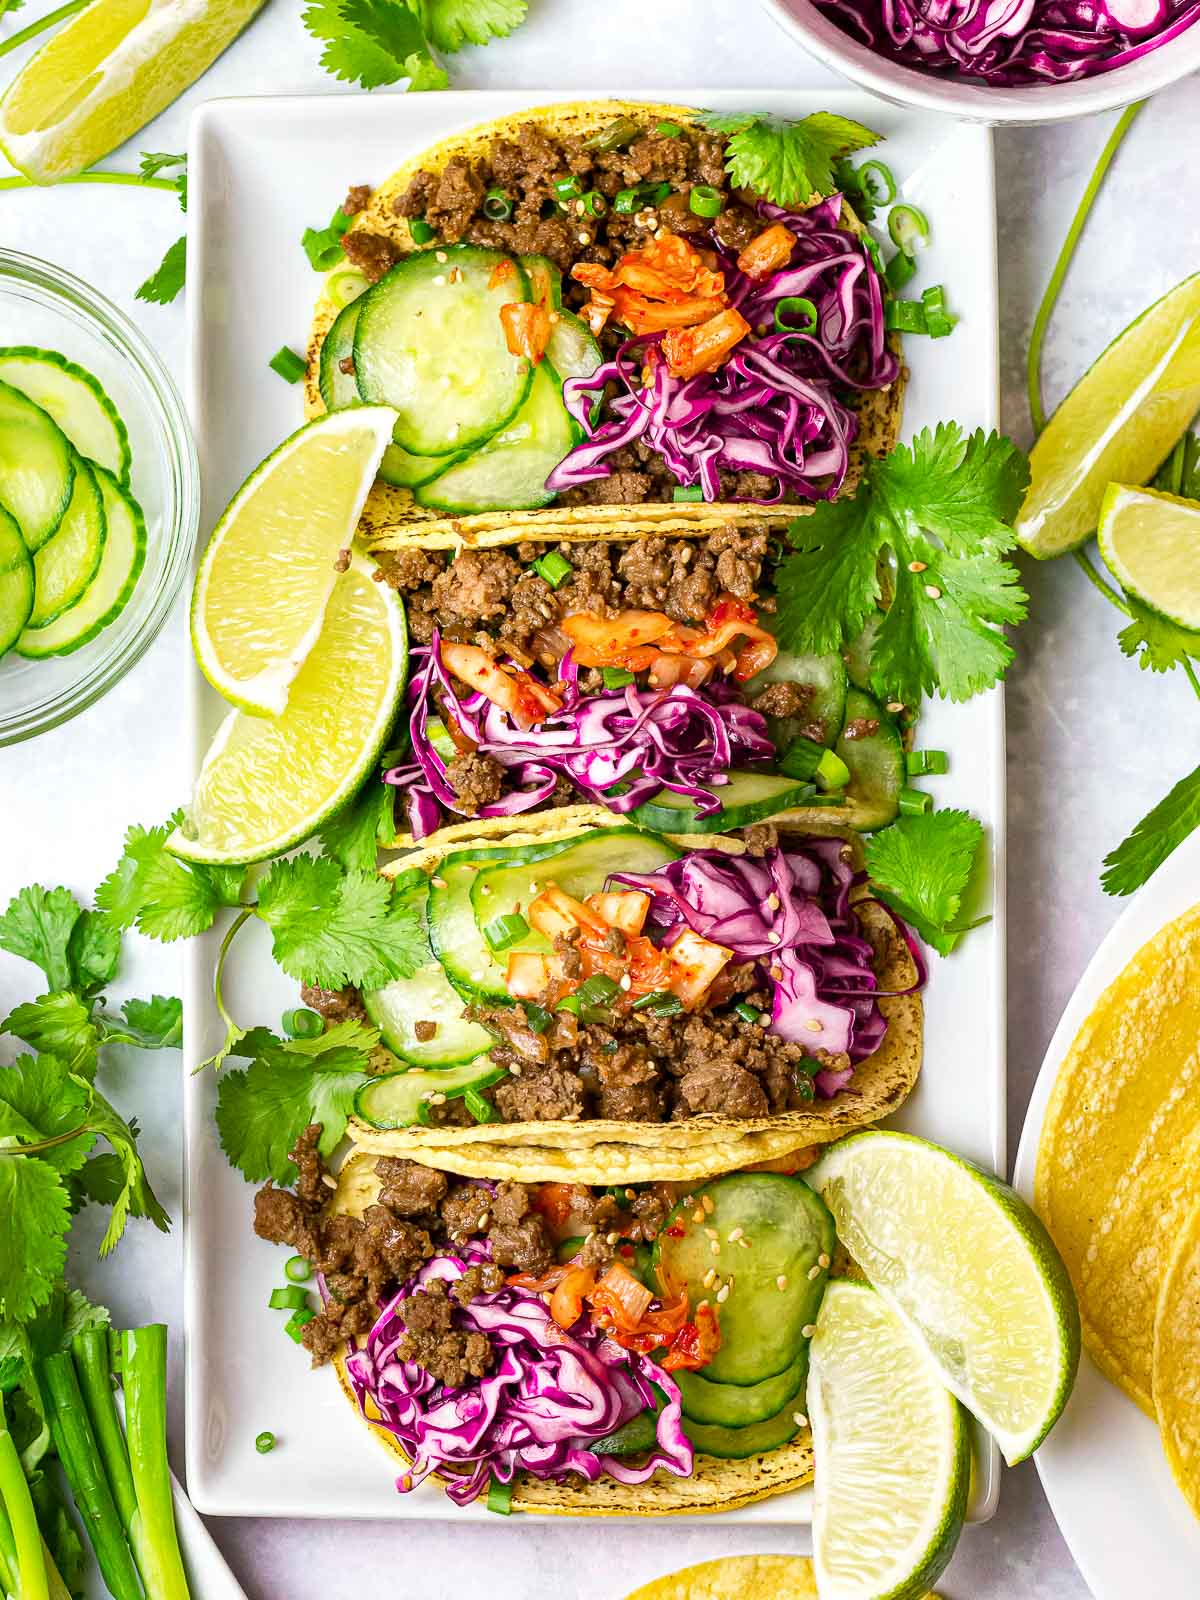 Korean beef tacos with purple slaw, kimchi, cucumbers, and lime on a white plate